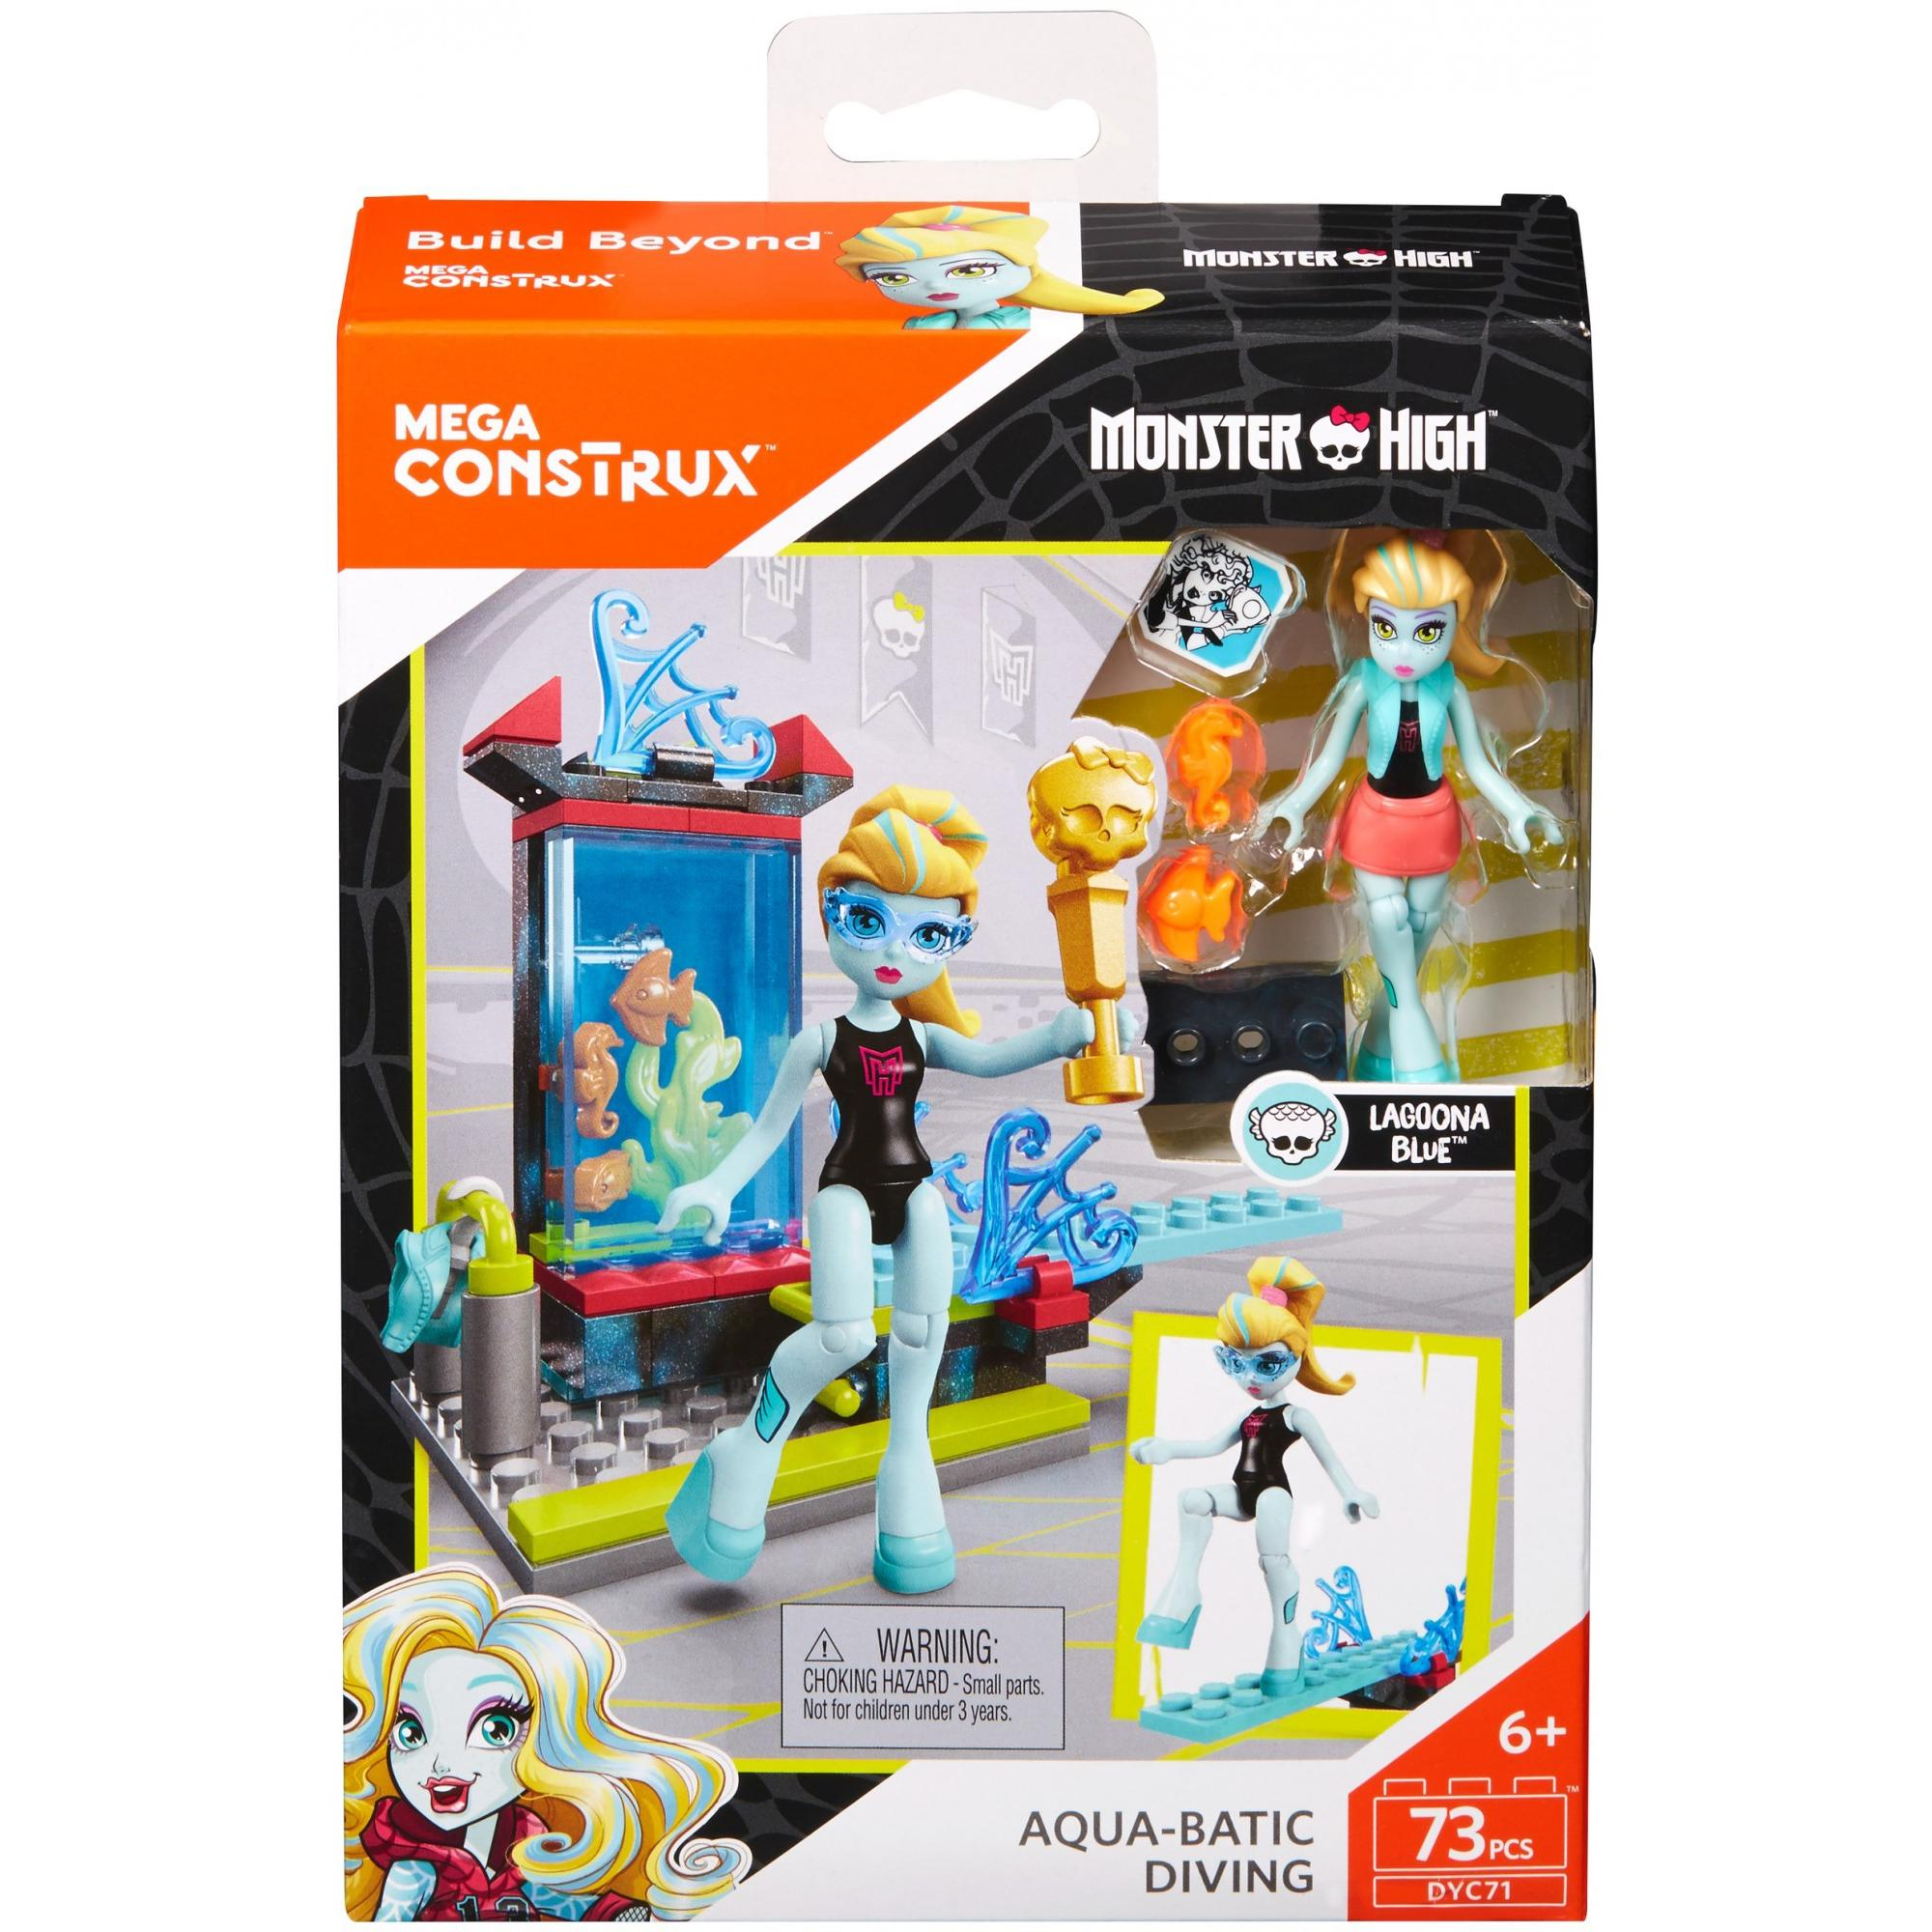 Mega Construx Monster High Creeperific Lagoona's Diving Competition Building Set by Mattel